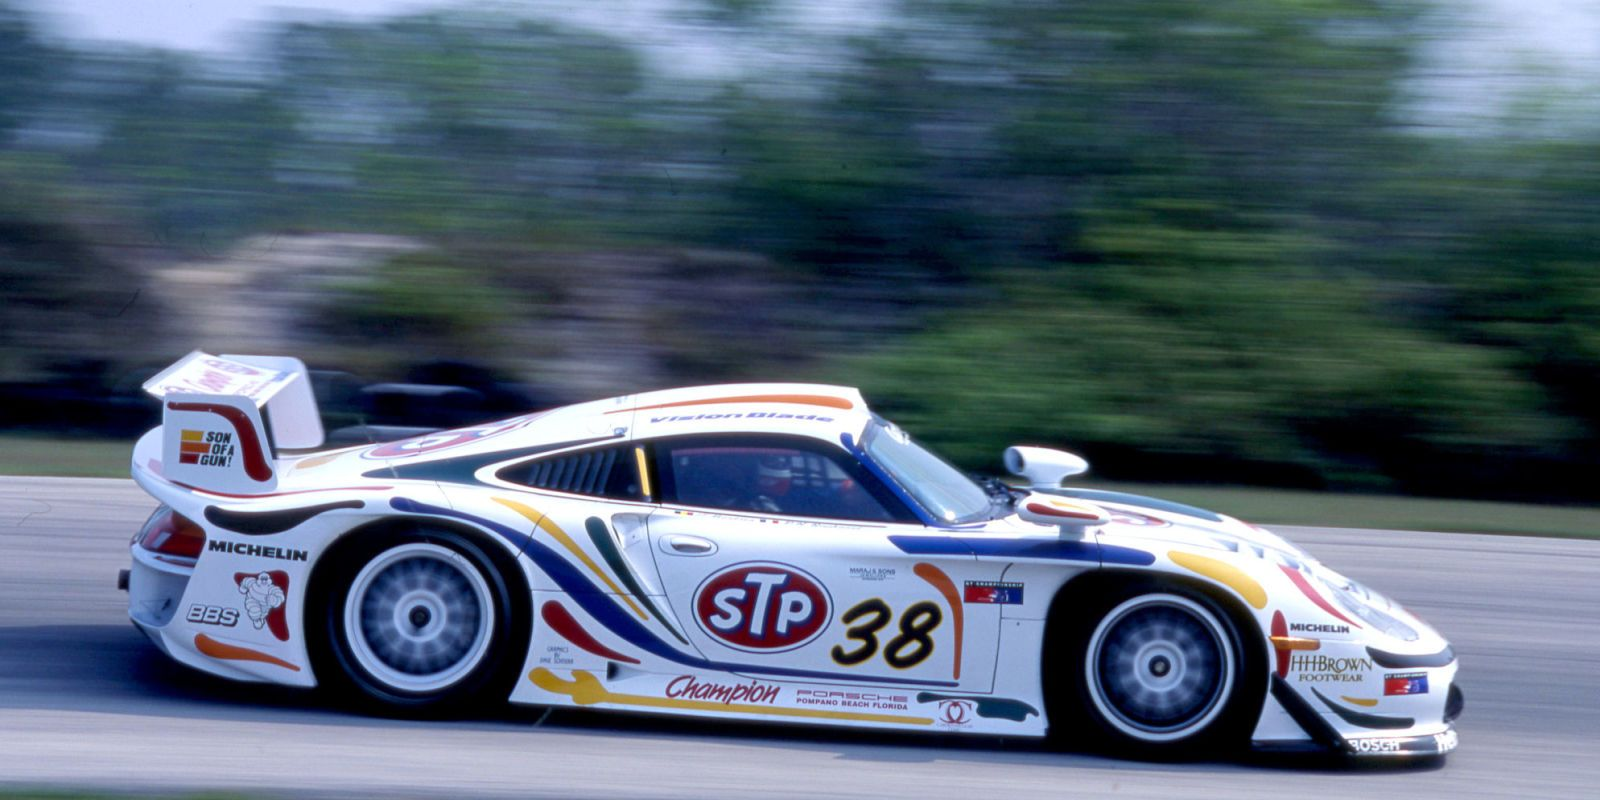 We Drove The Champion Racing Porsche 911 GT1, An Unexpected Frankenstein  Race Car Of Two Generations Of 911.